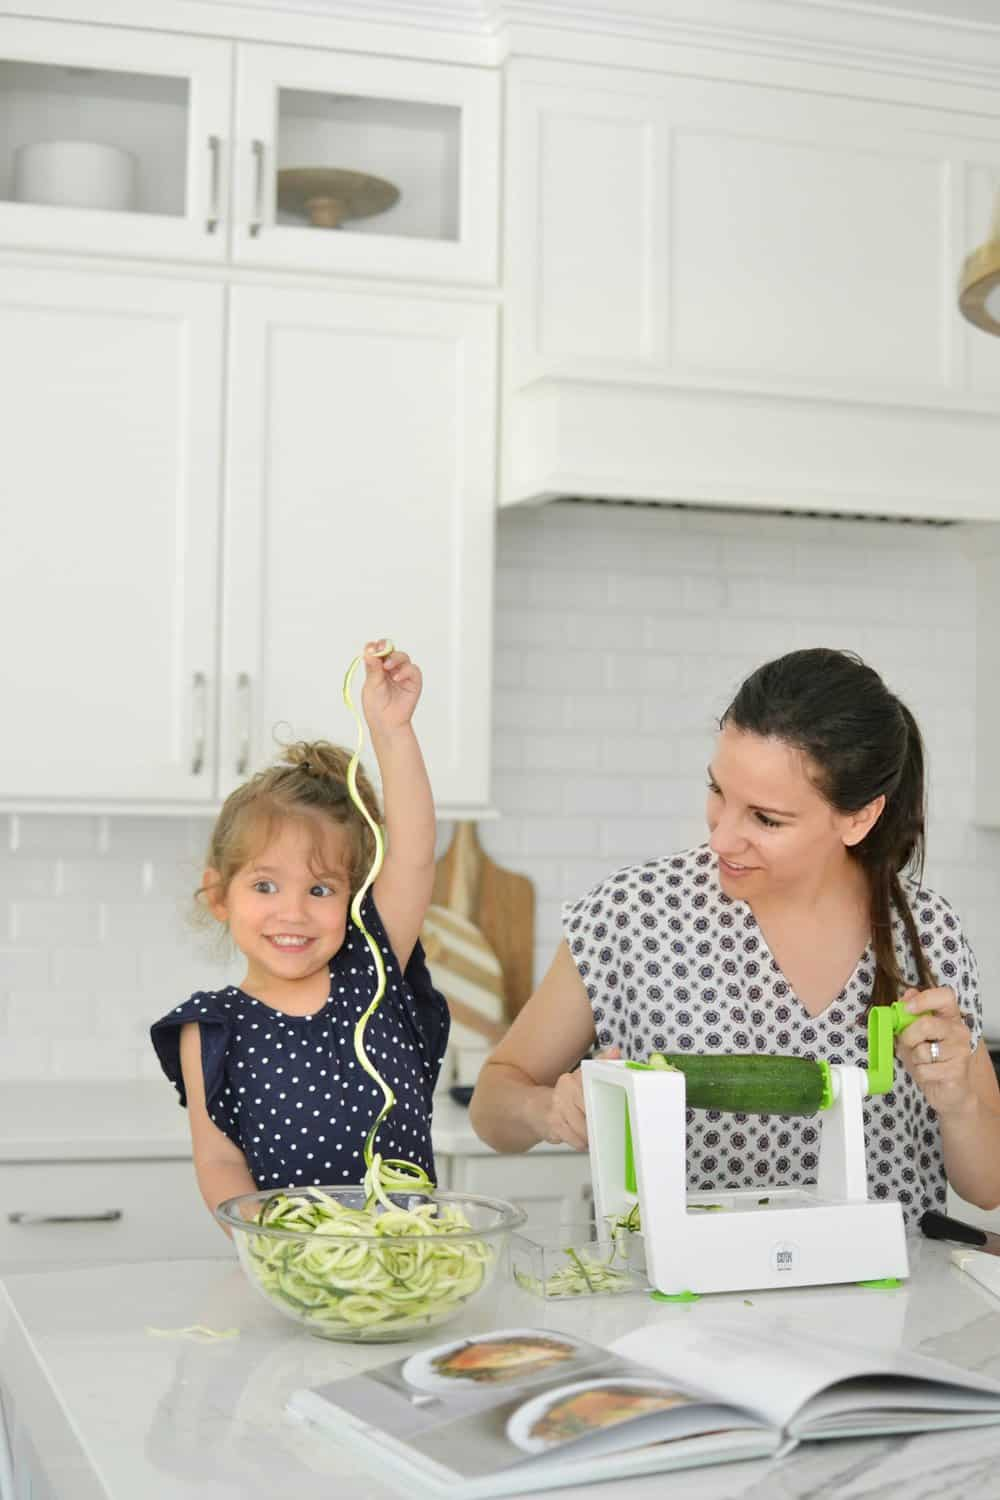 child holding up noodles in kitchen with mother making zoodles